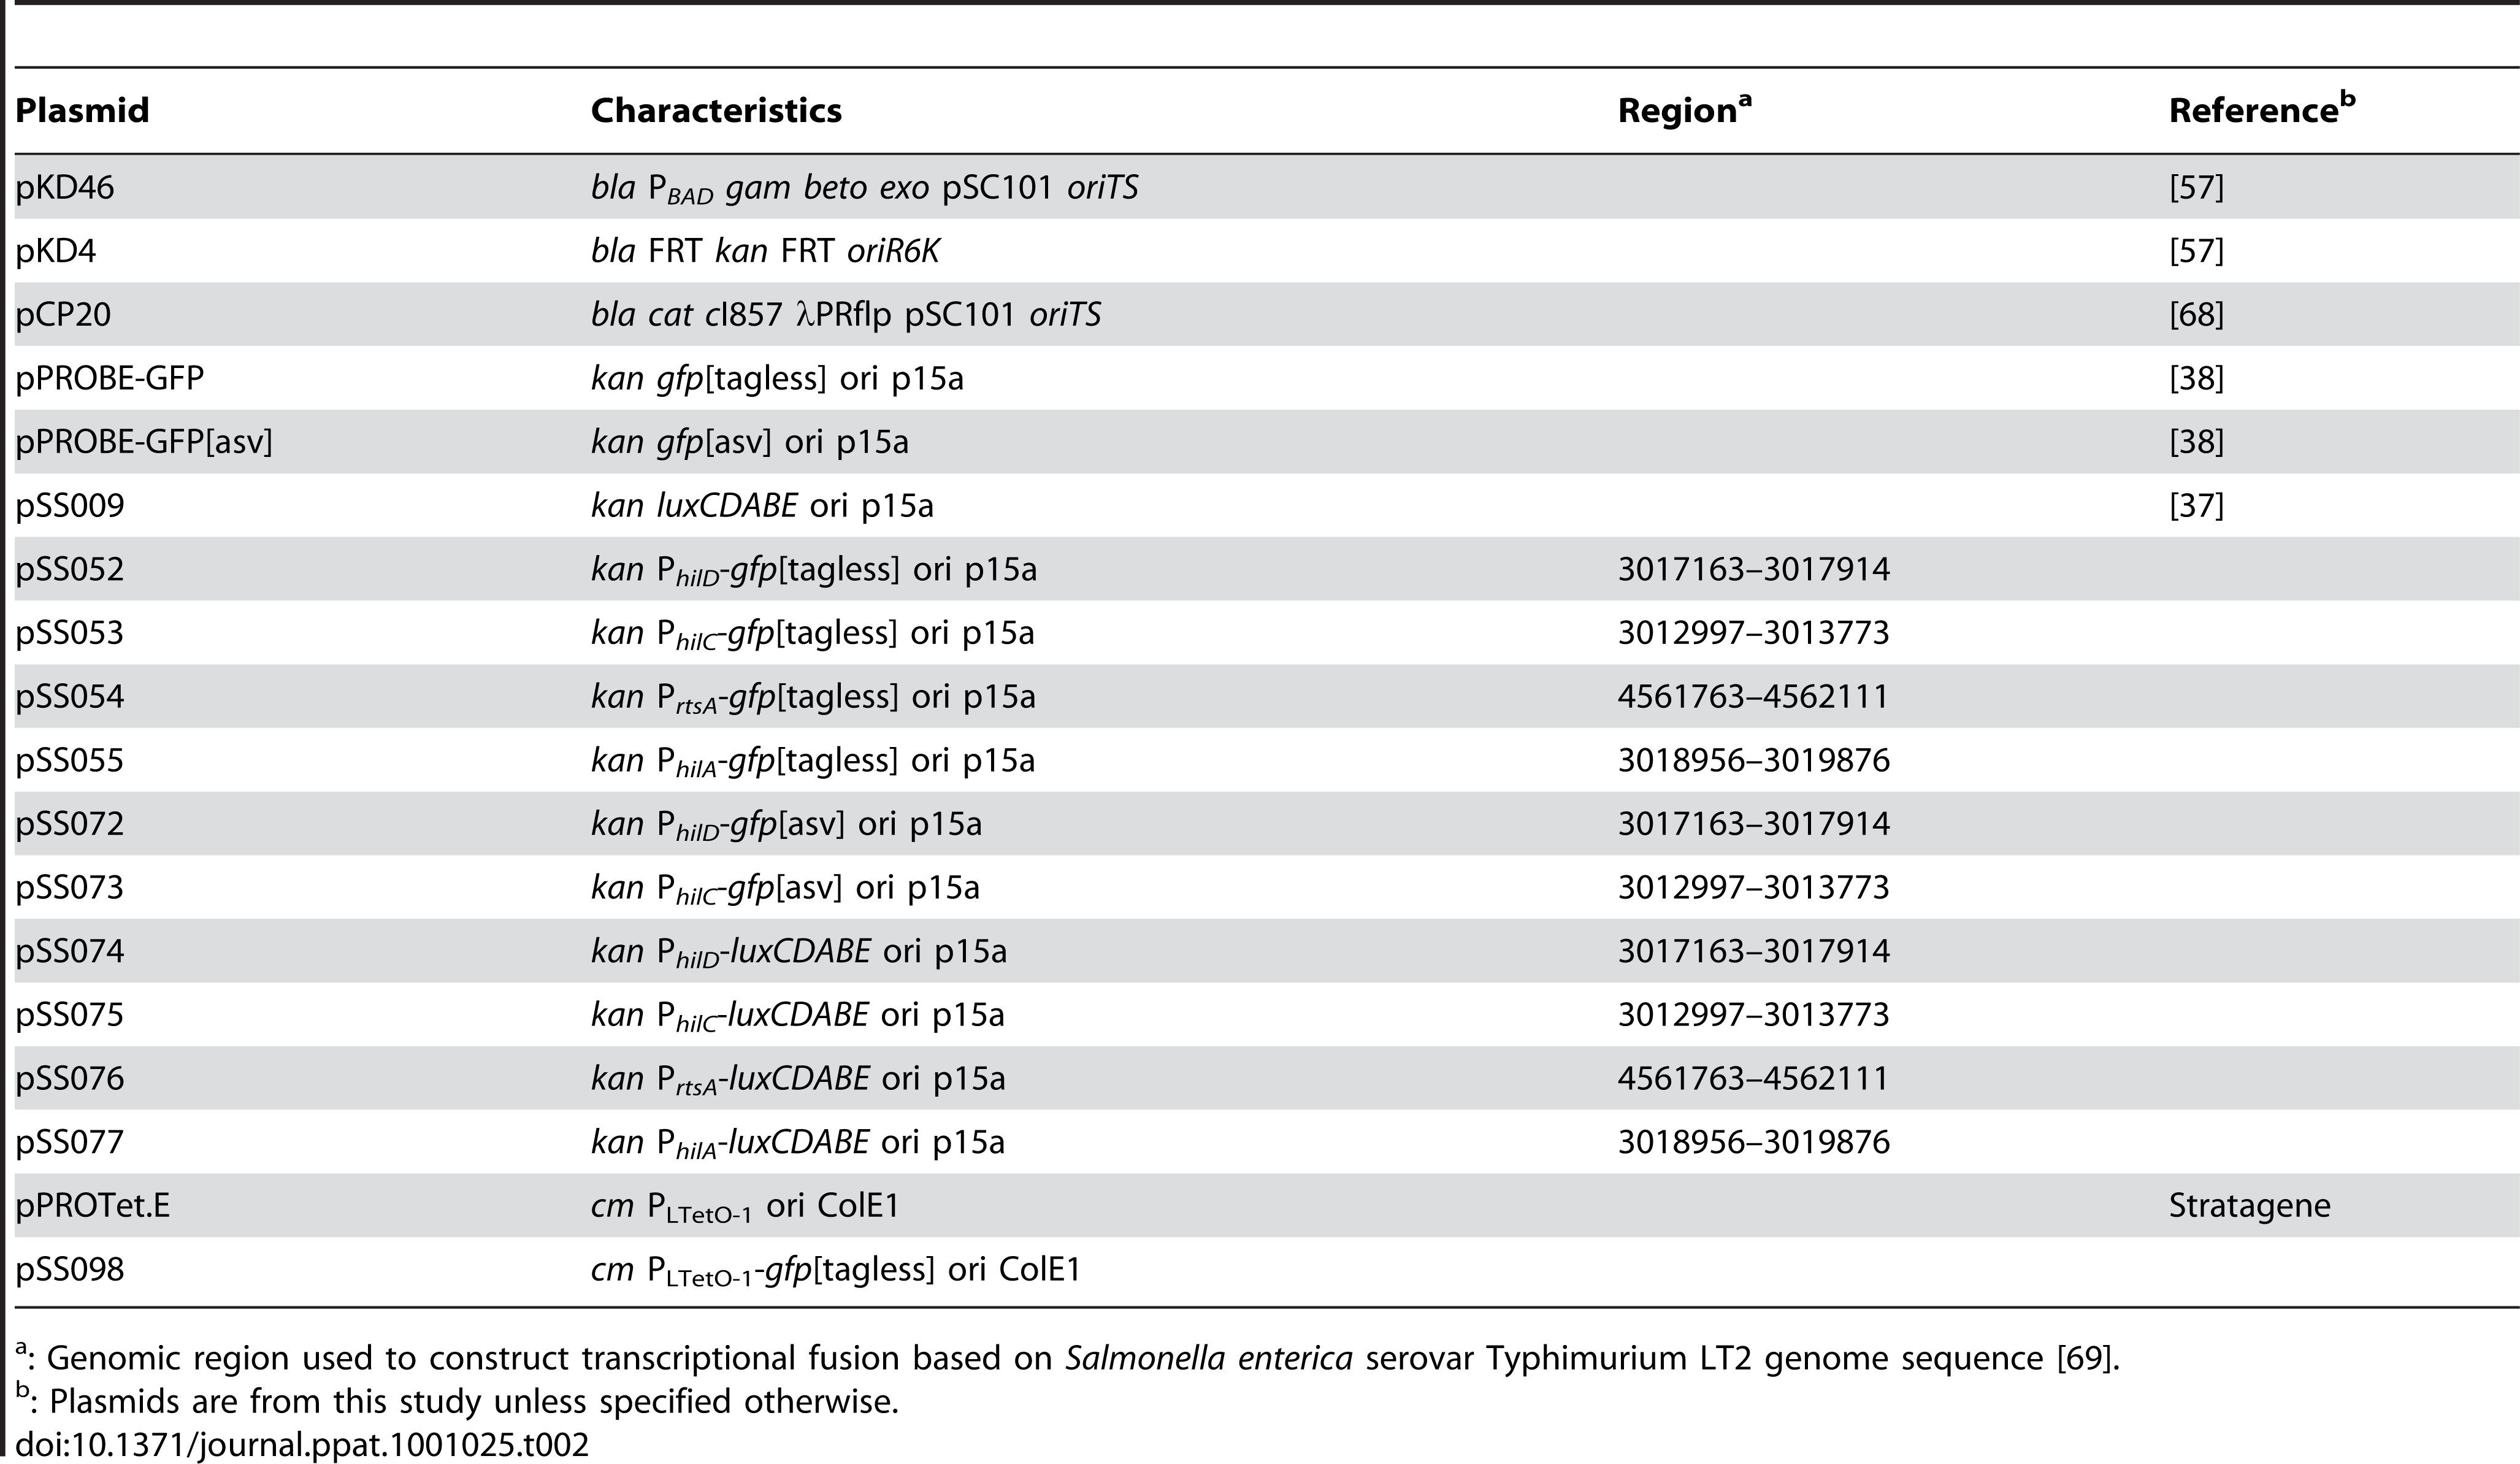 List of plasmids used in this study.